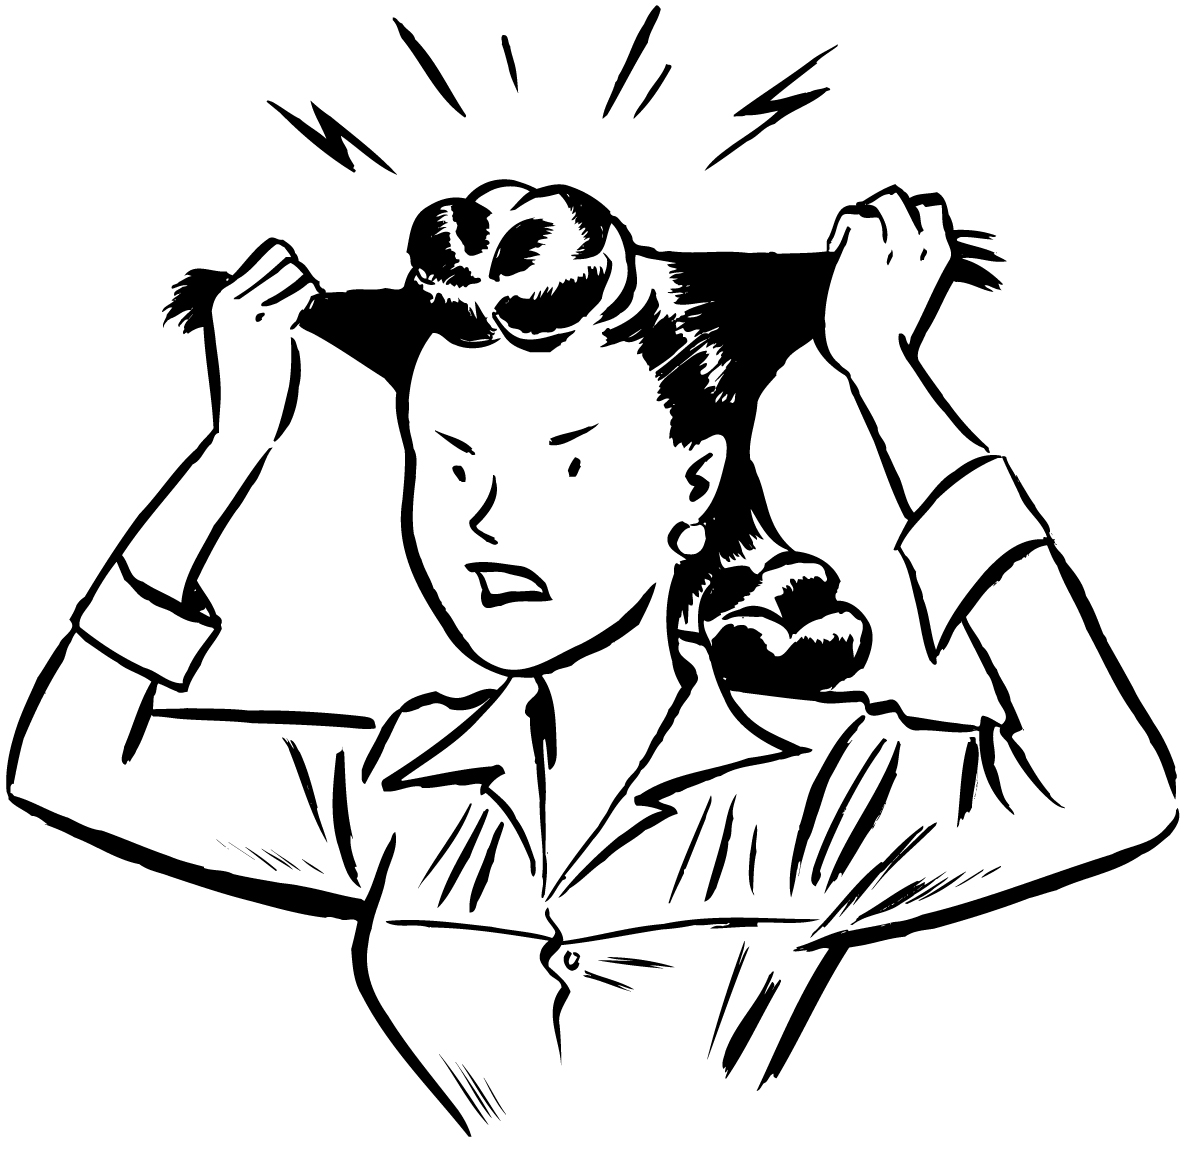 Scary clipart stressed person #5